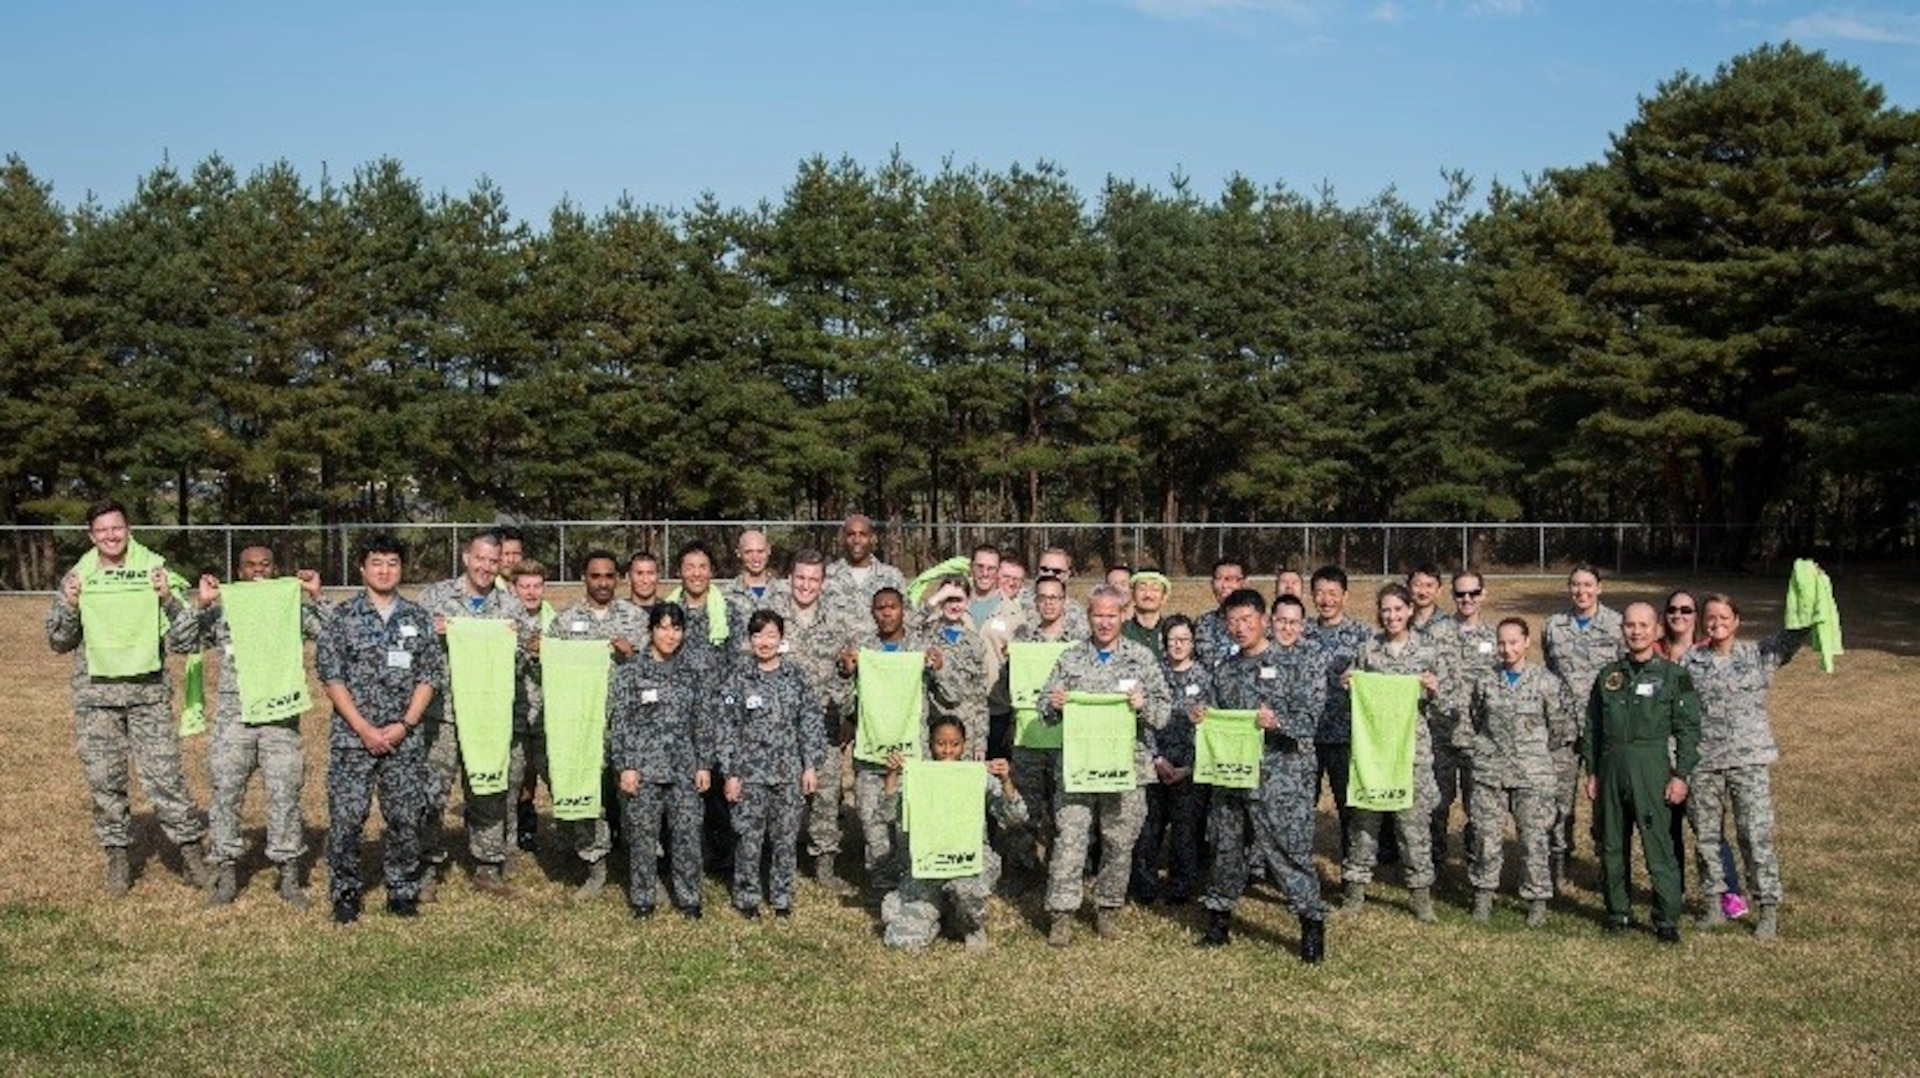 Stronger together: JASDF, U.S. Airmen build bonds during resiliency day